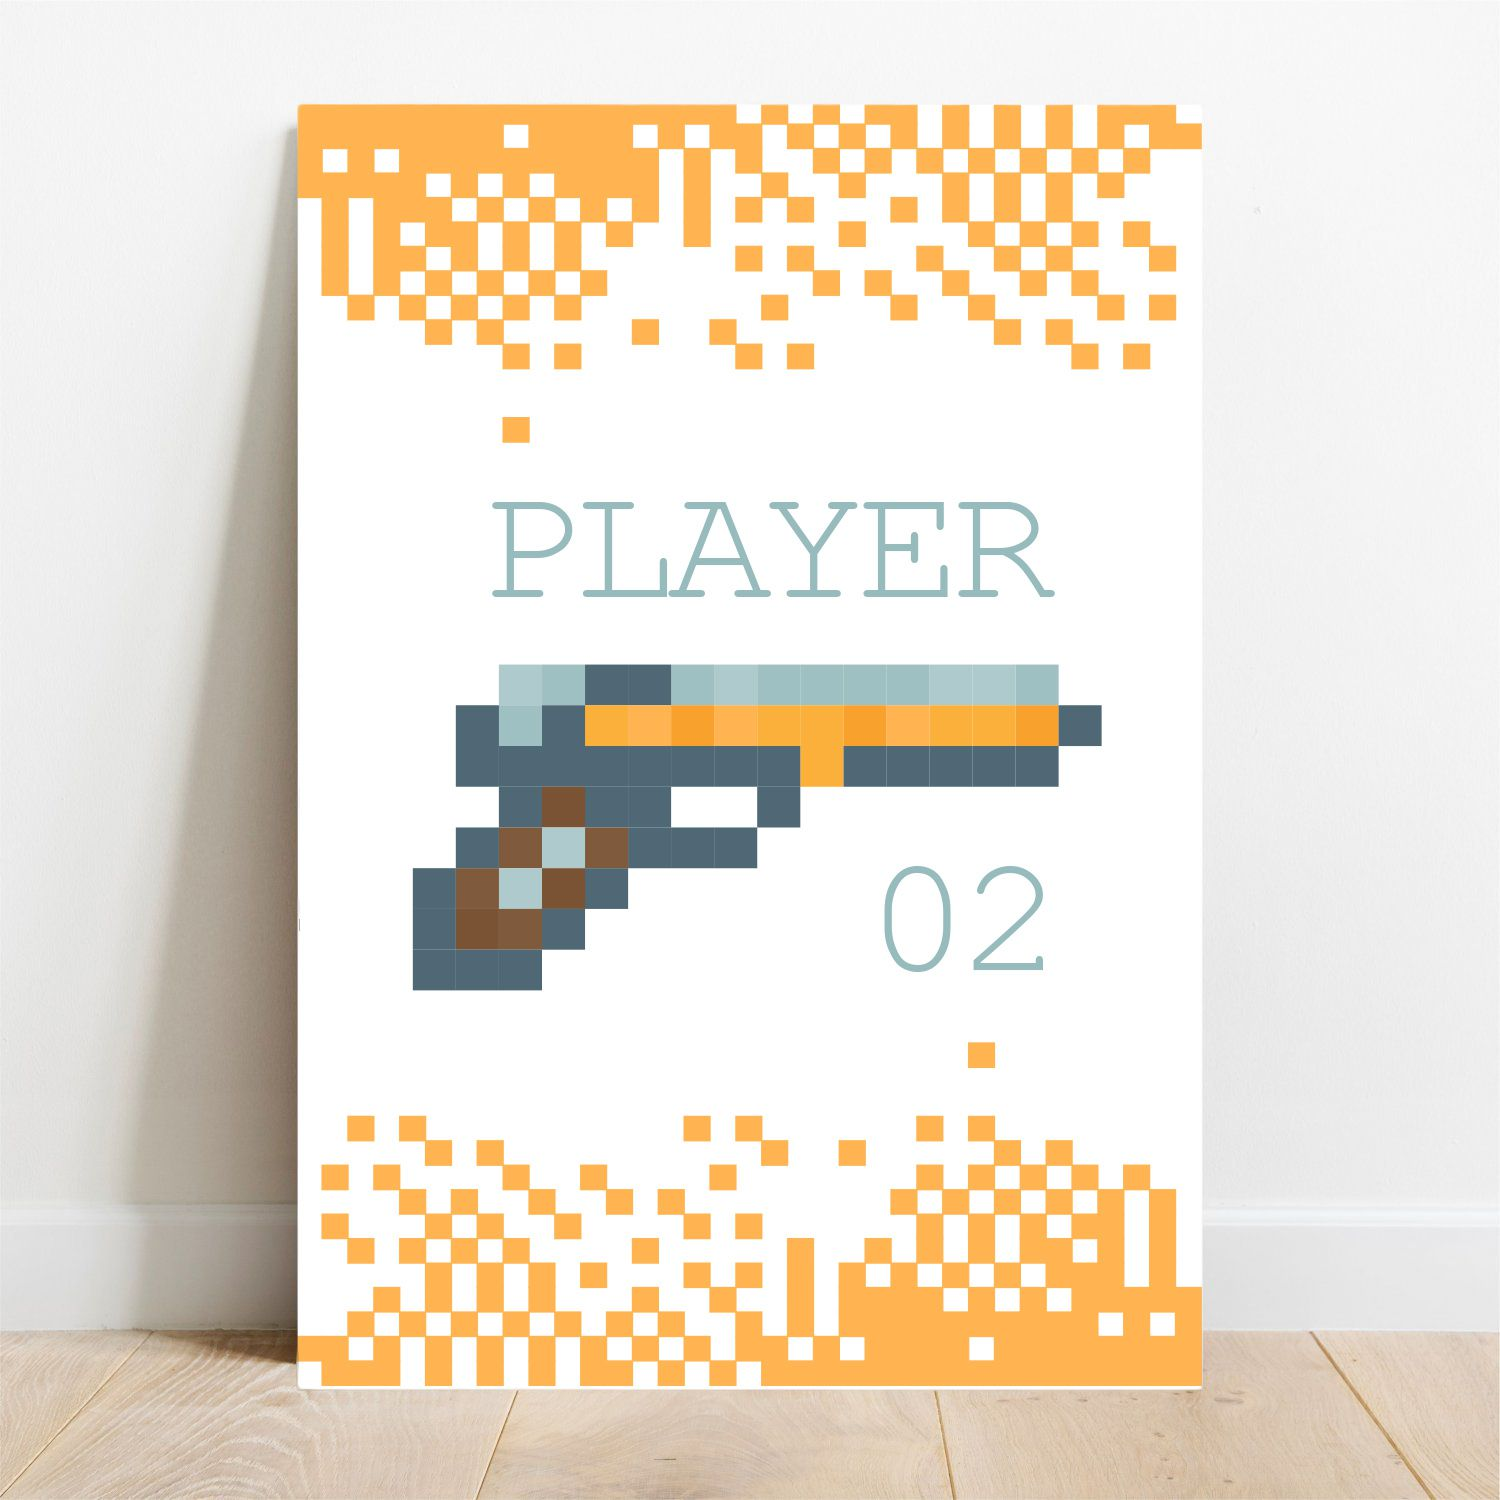 Placa Decorativa Player 2  - TaColado